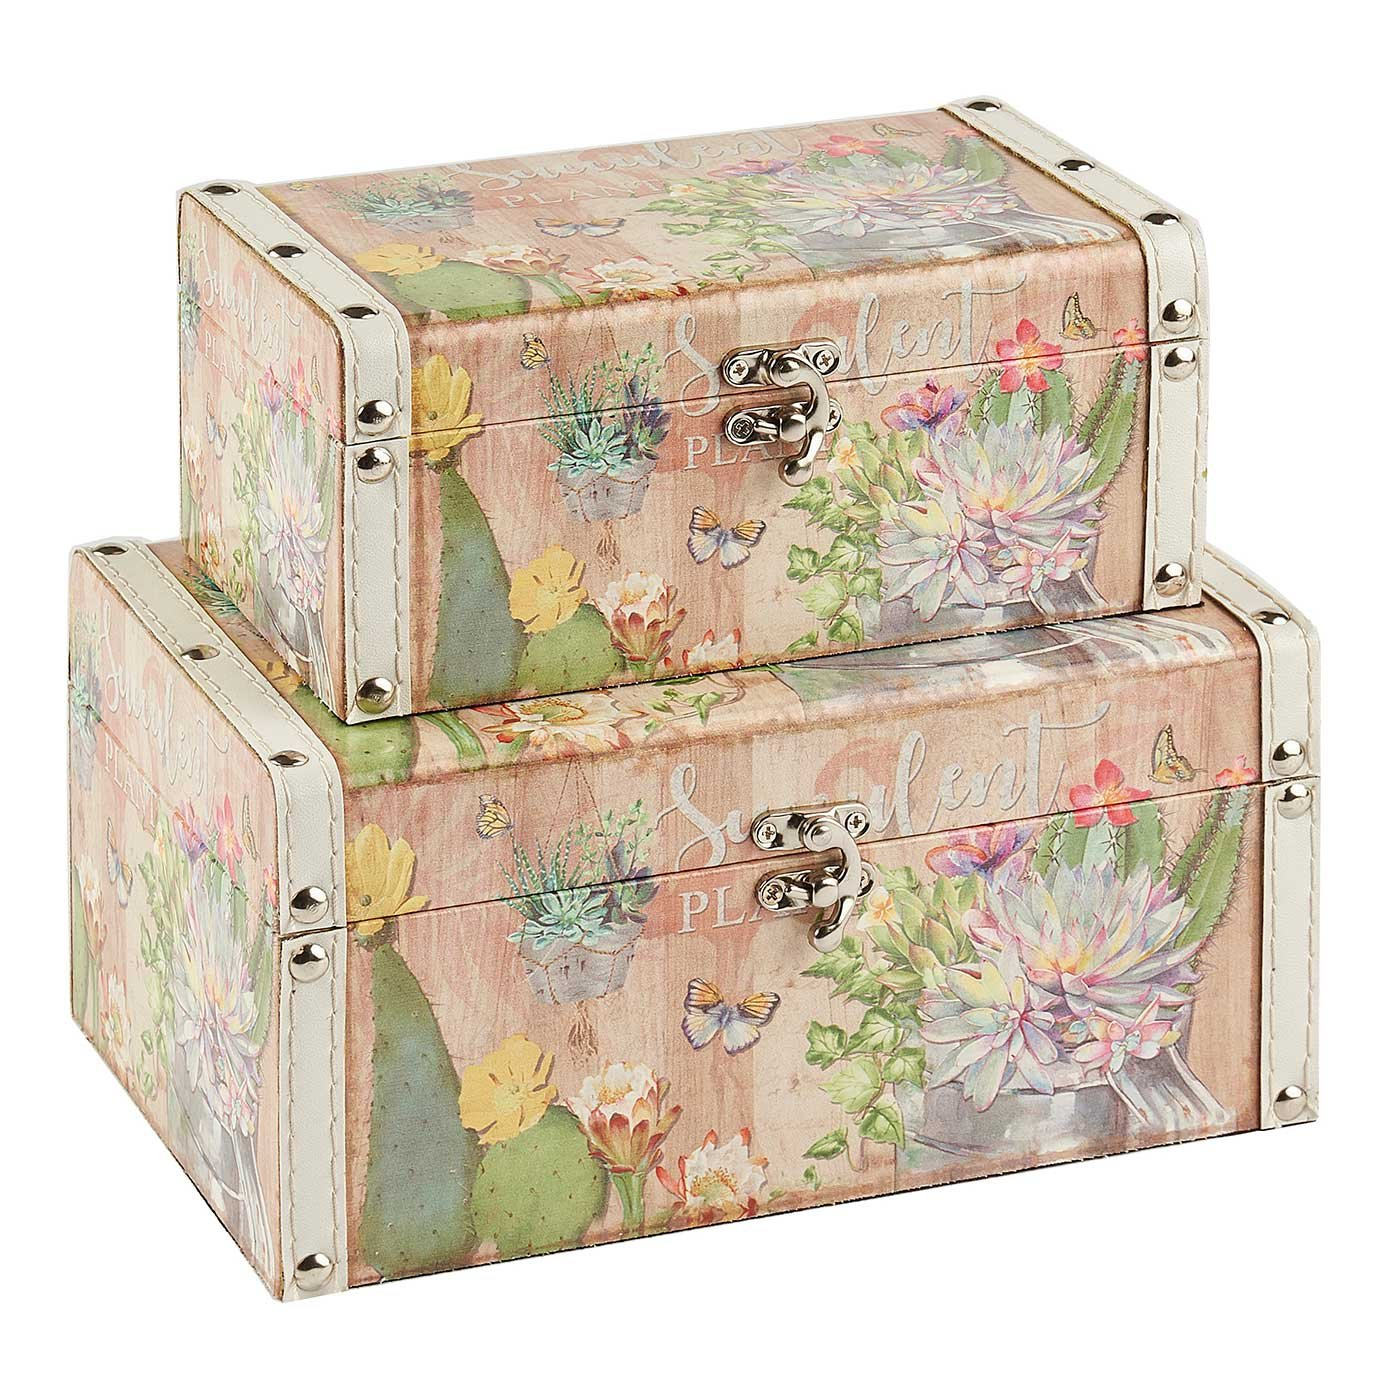 cha wooden hosley decorative leather clasp box s ea with storage boxes decor long